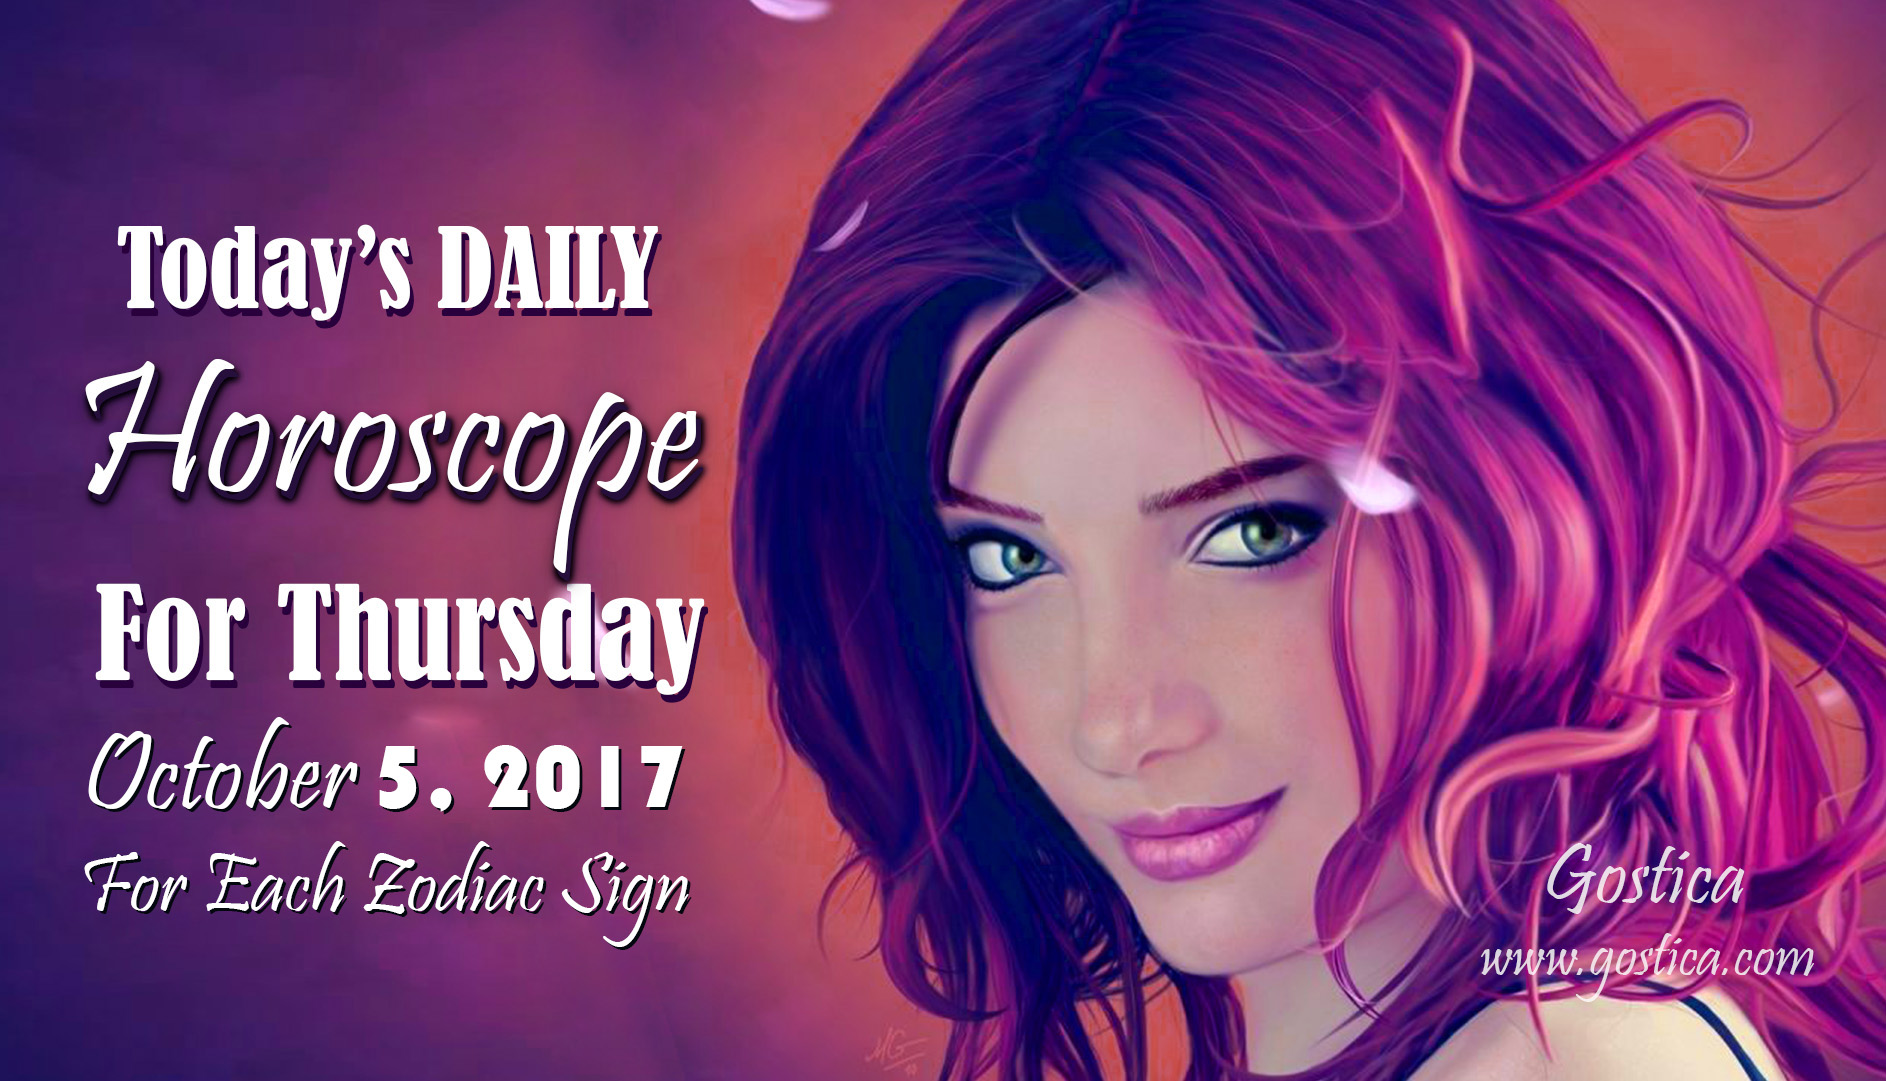 Daily-Horoscope-thursday.jpg